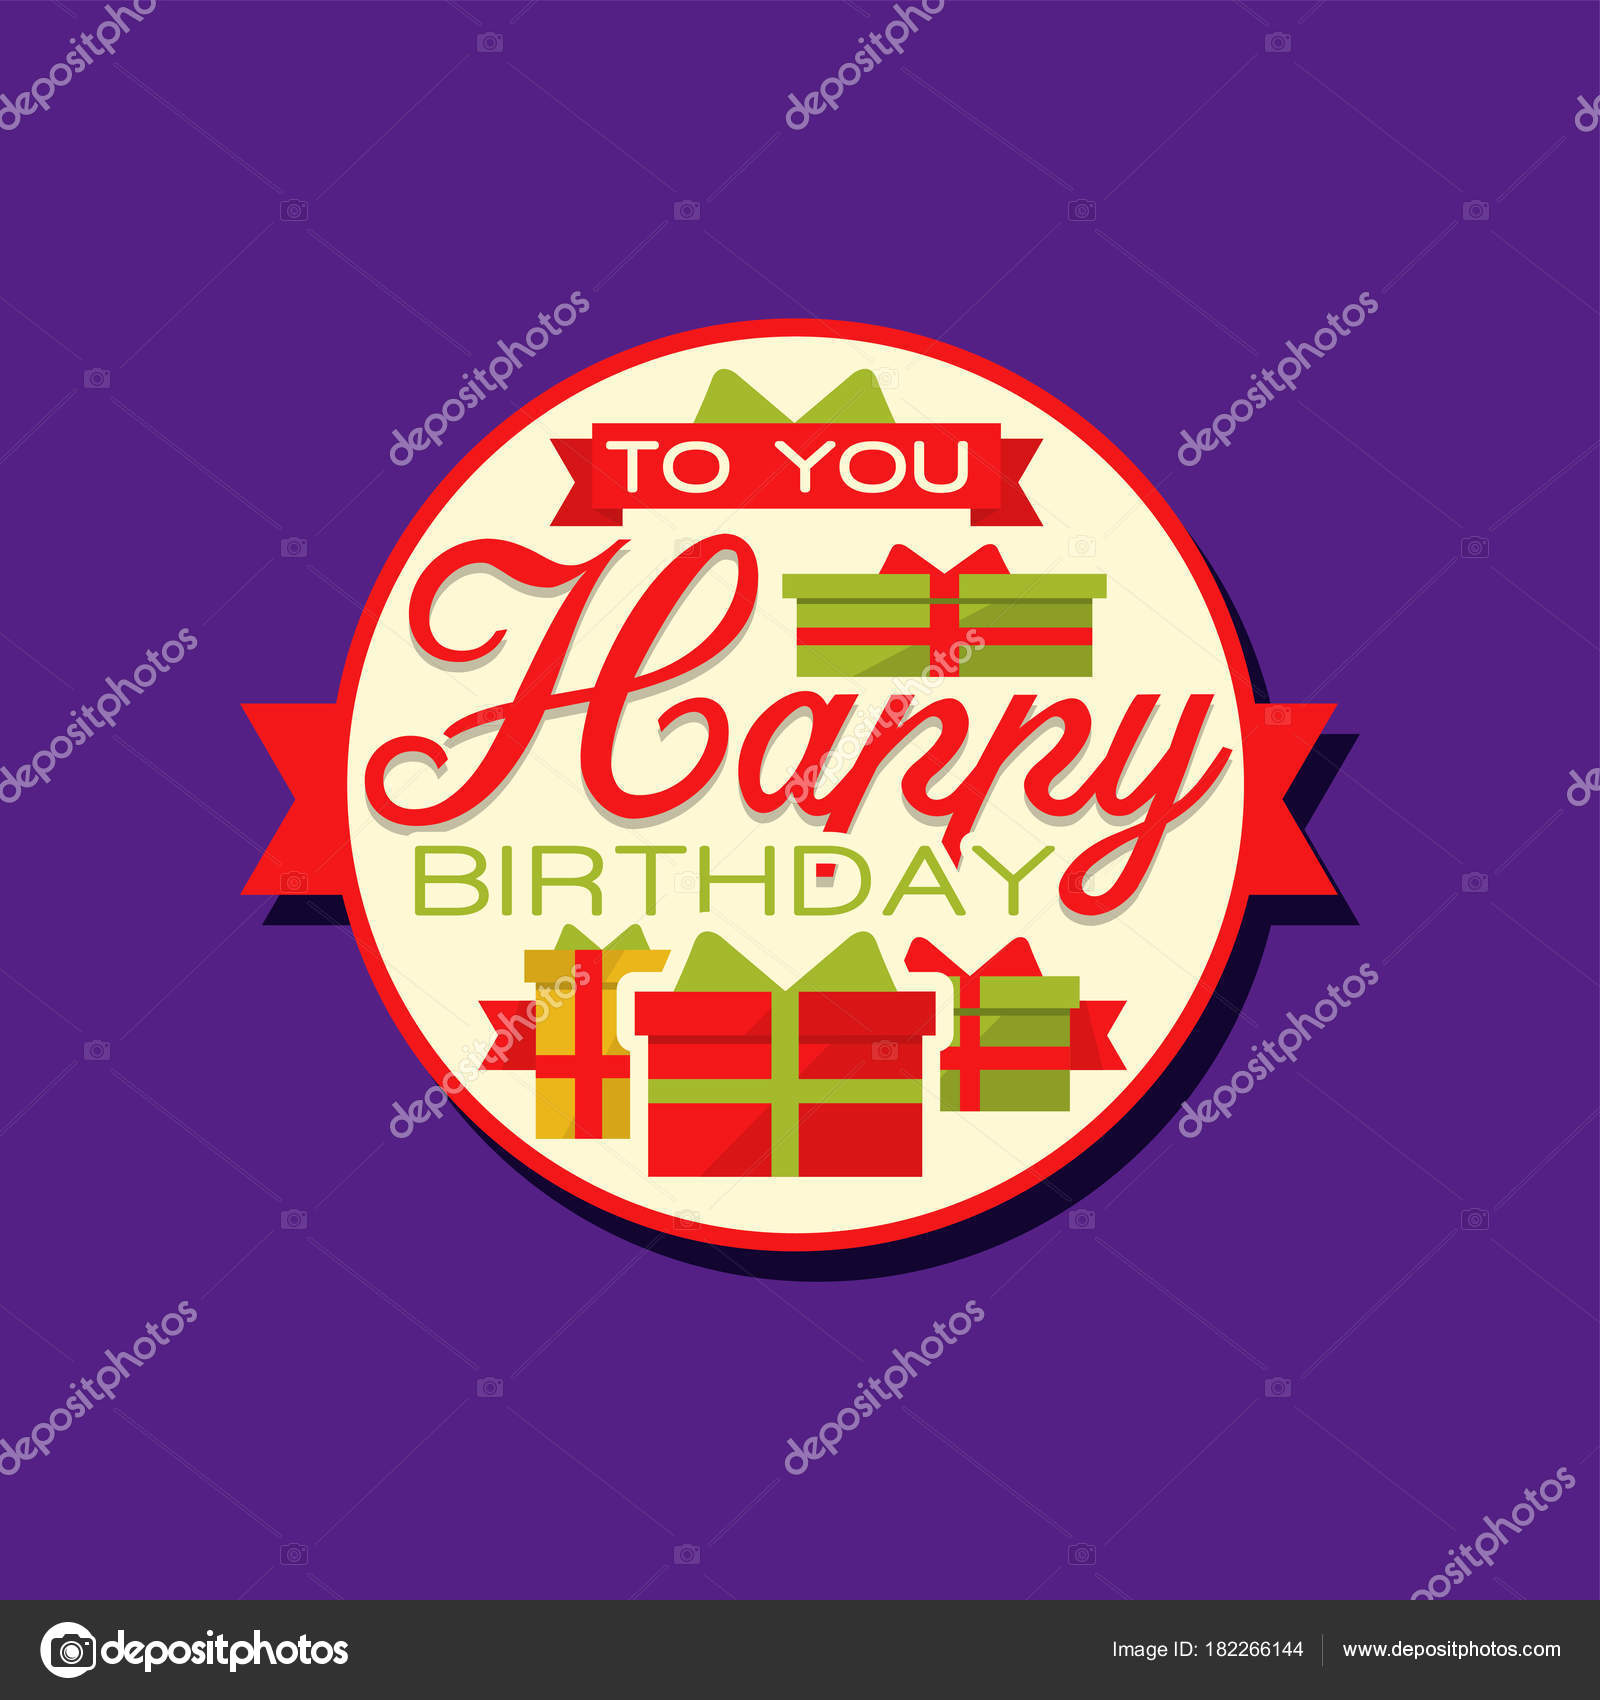 Creative design of happy birthday sticker or label with gifts and text greeting card or decor element for holiday celebration tag for present